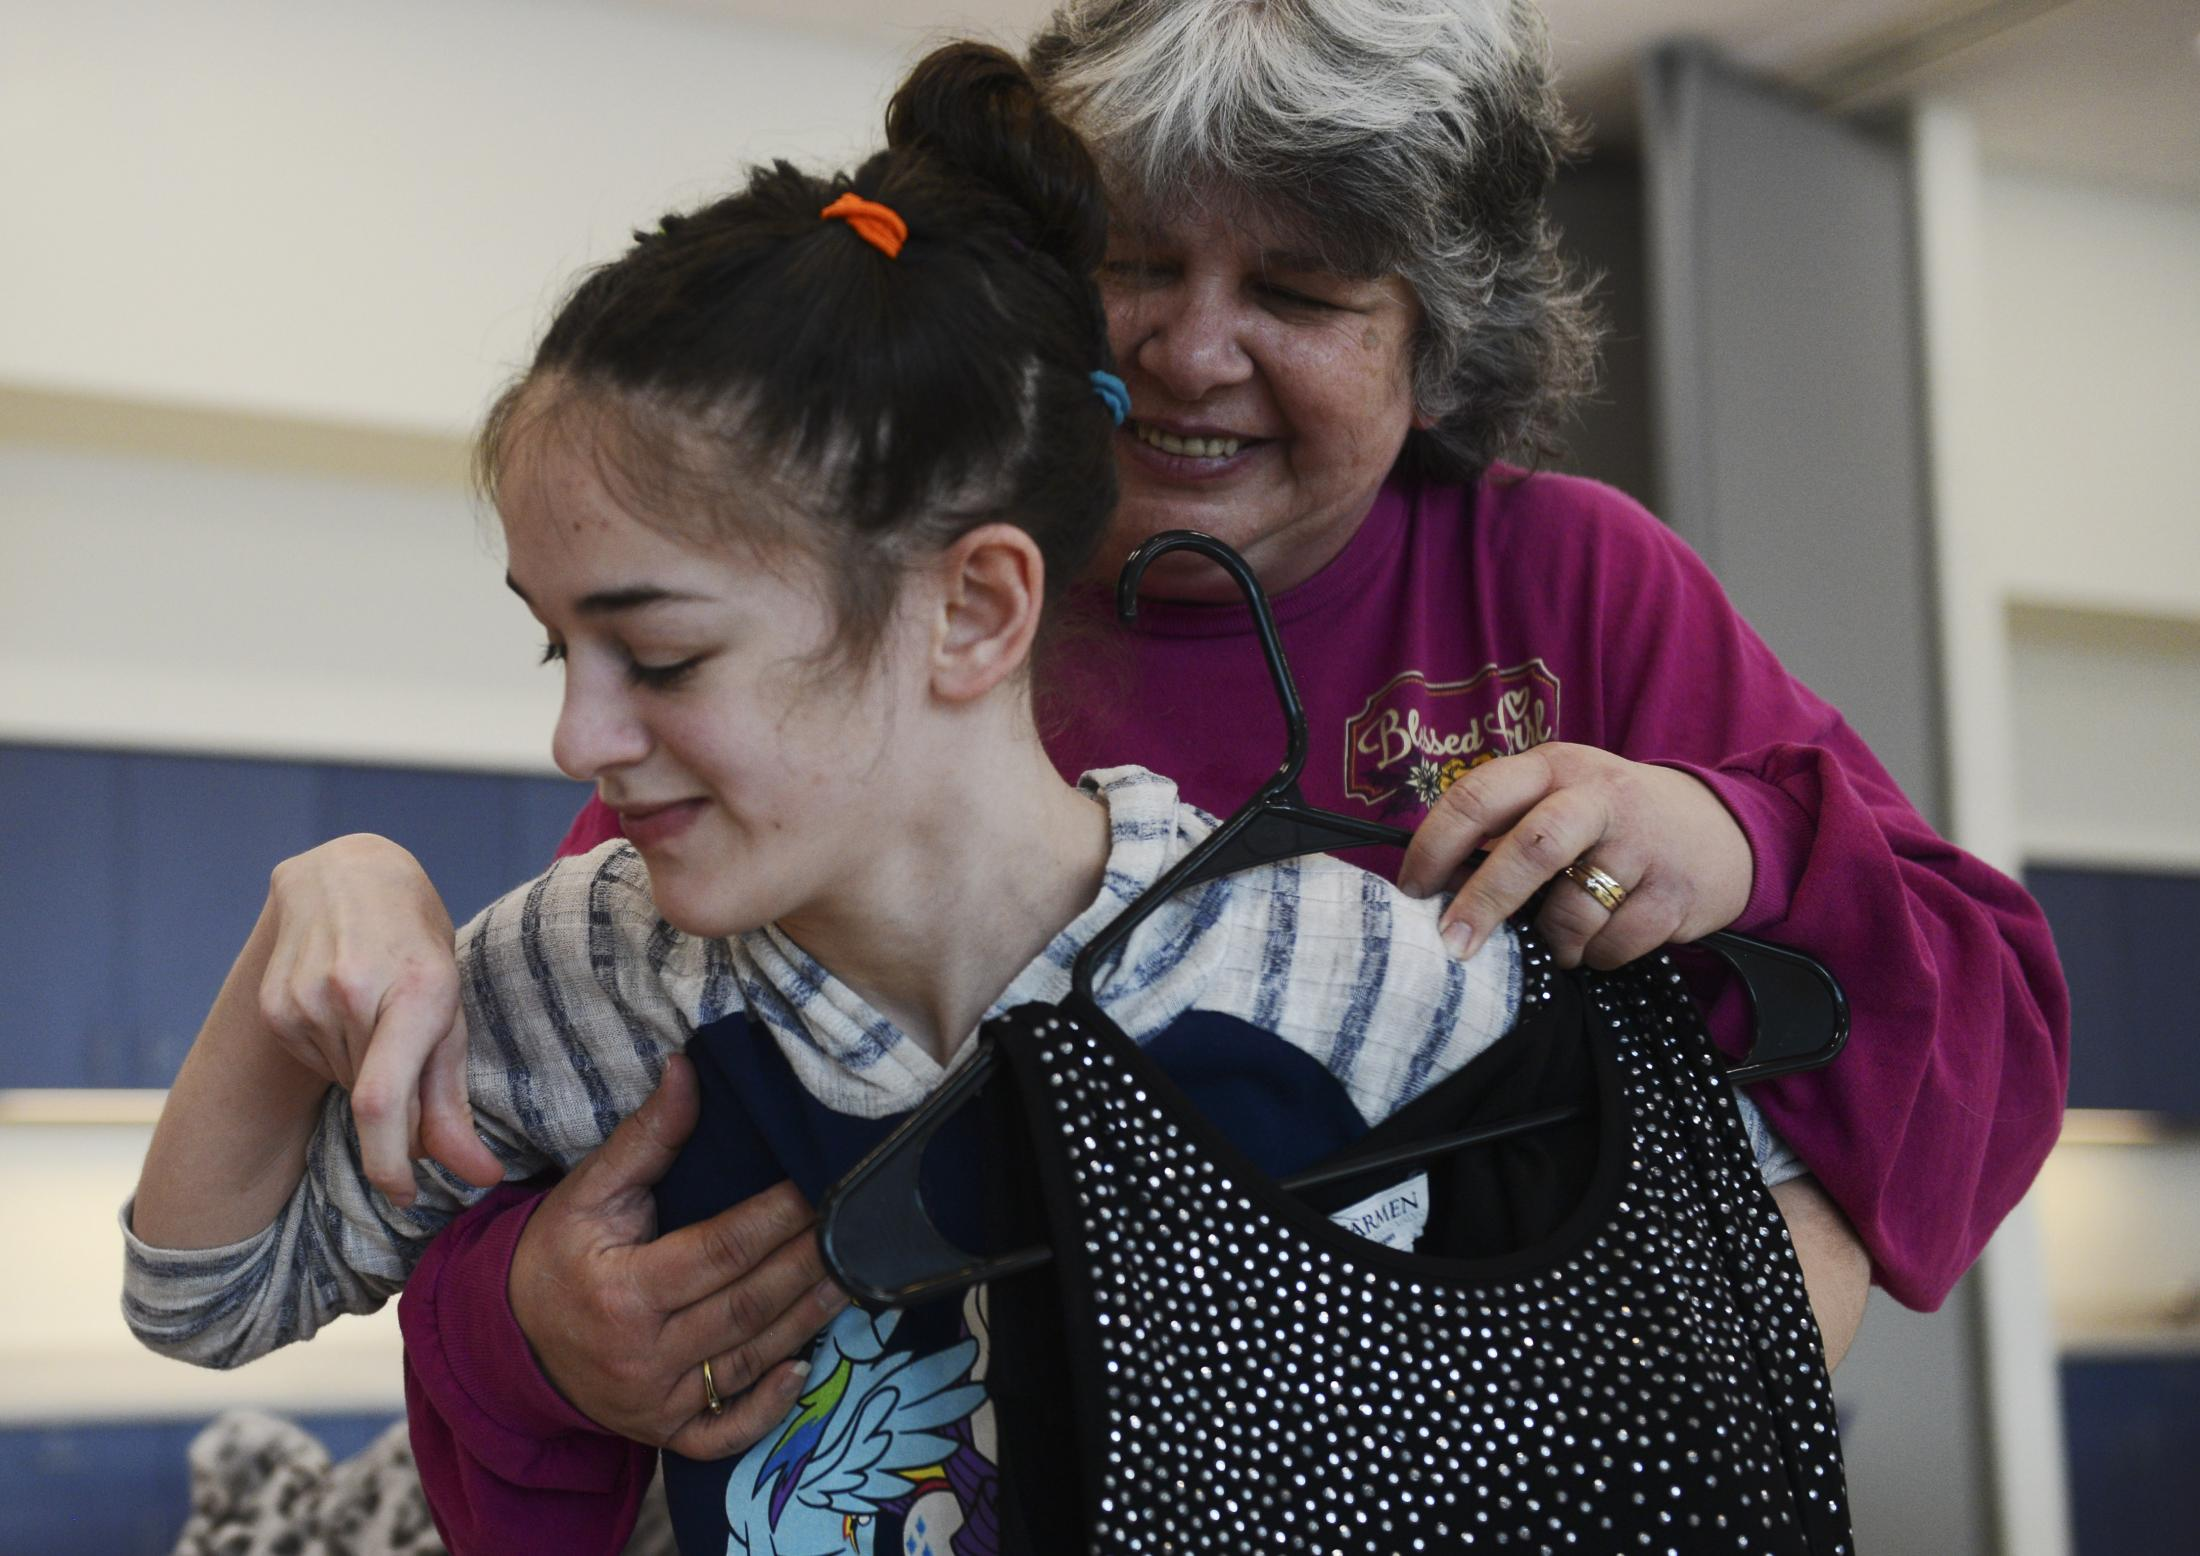 Kathy Vanderslice, left, holds her daughter Betsy Vanderslice, 17, at the 'Say Yes to the Dress' event on Saturday, Jan. 25, 2020, at the Activities and Recreation Center. Betsy is unable to walk independently and has trouble trying on new clothes. But she knew this was her dream dress upon seeing it for the first time.